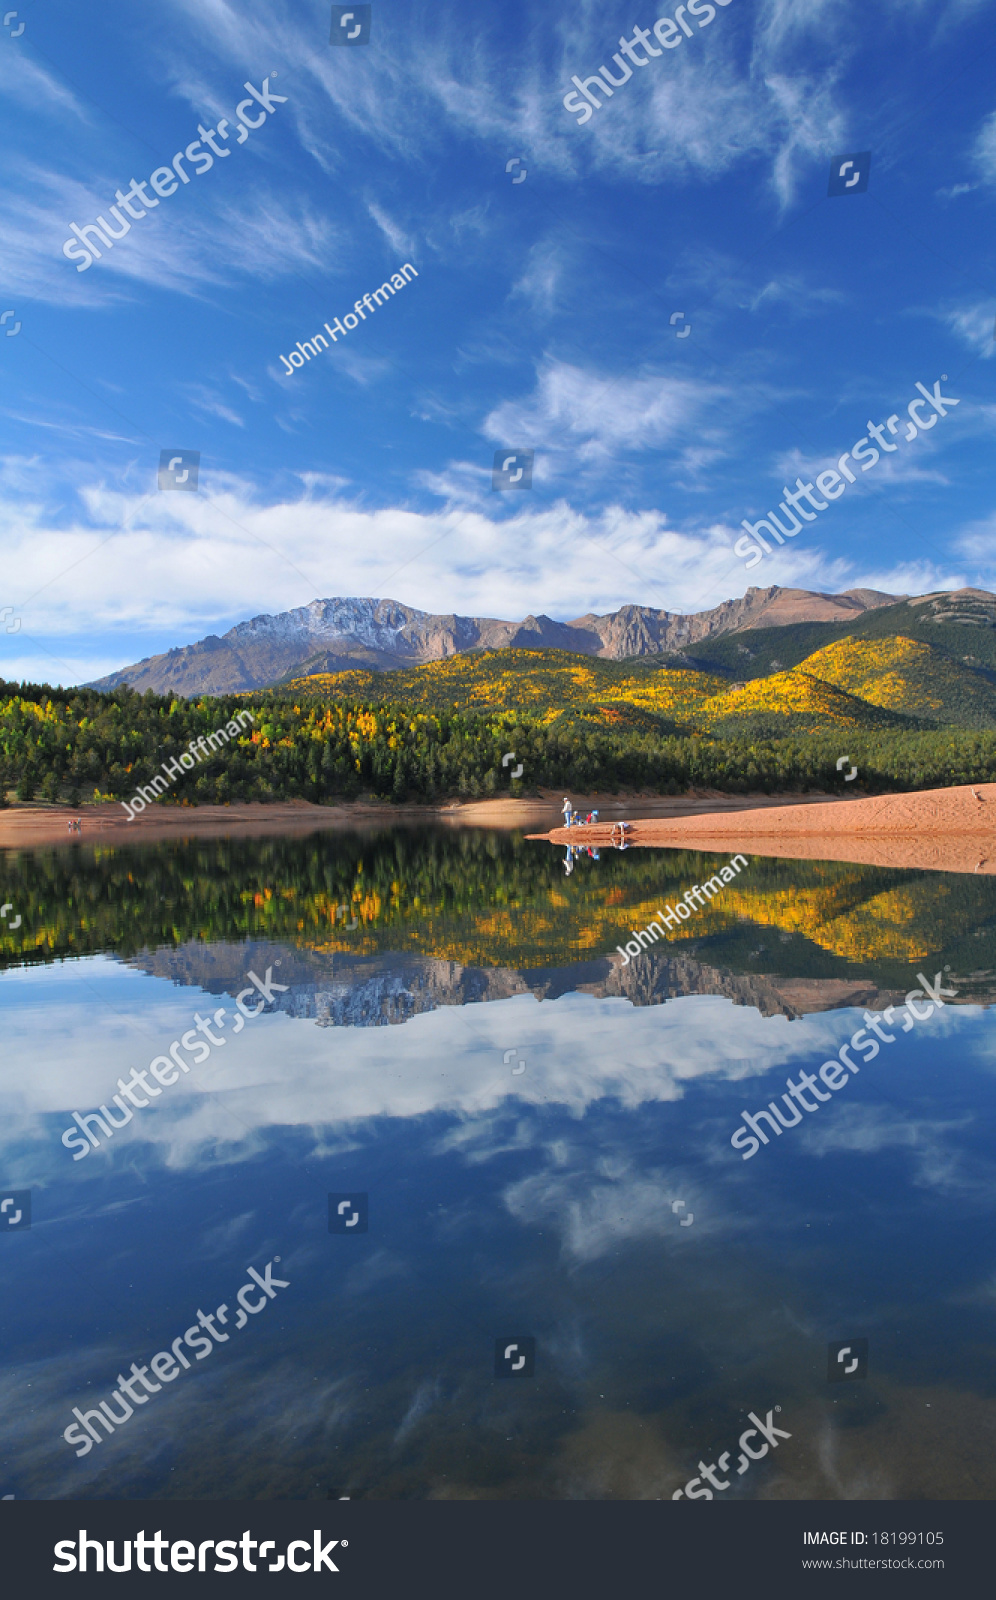 Pikes Peak At Crystal Reservoir During The Autumn Season Stock Photo 18199105 : Shutterstock